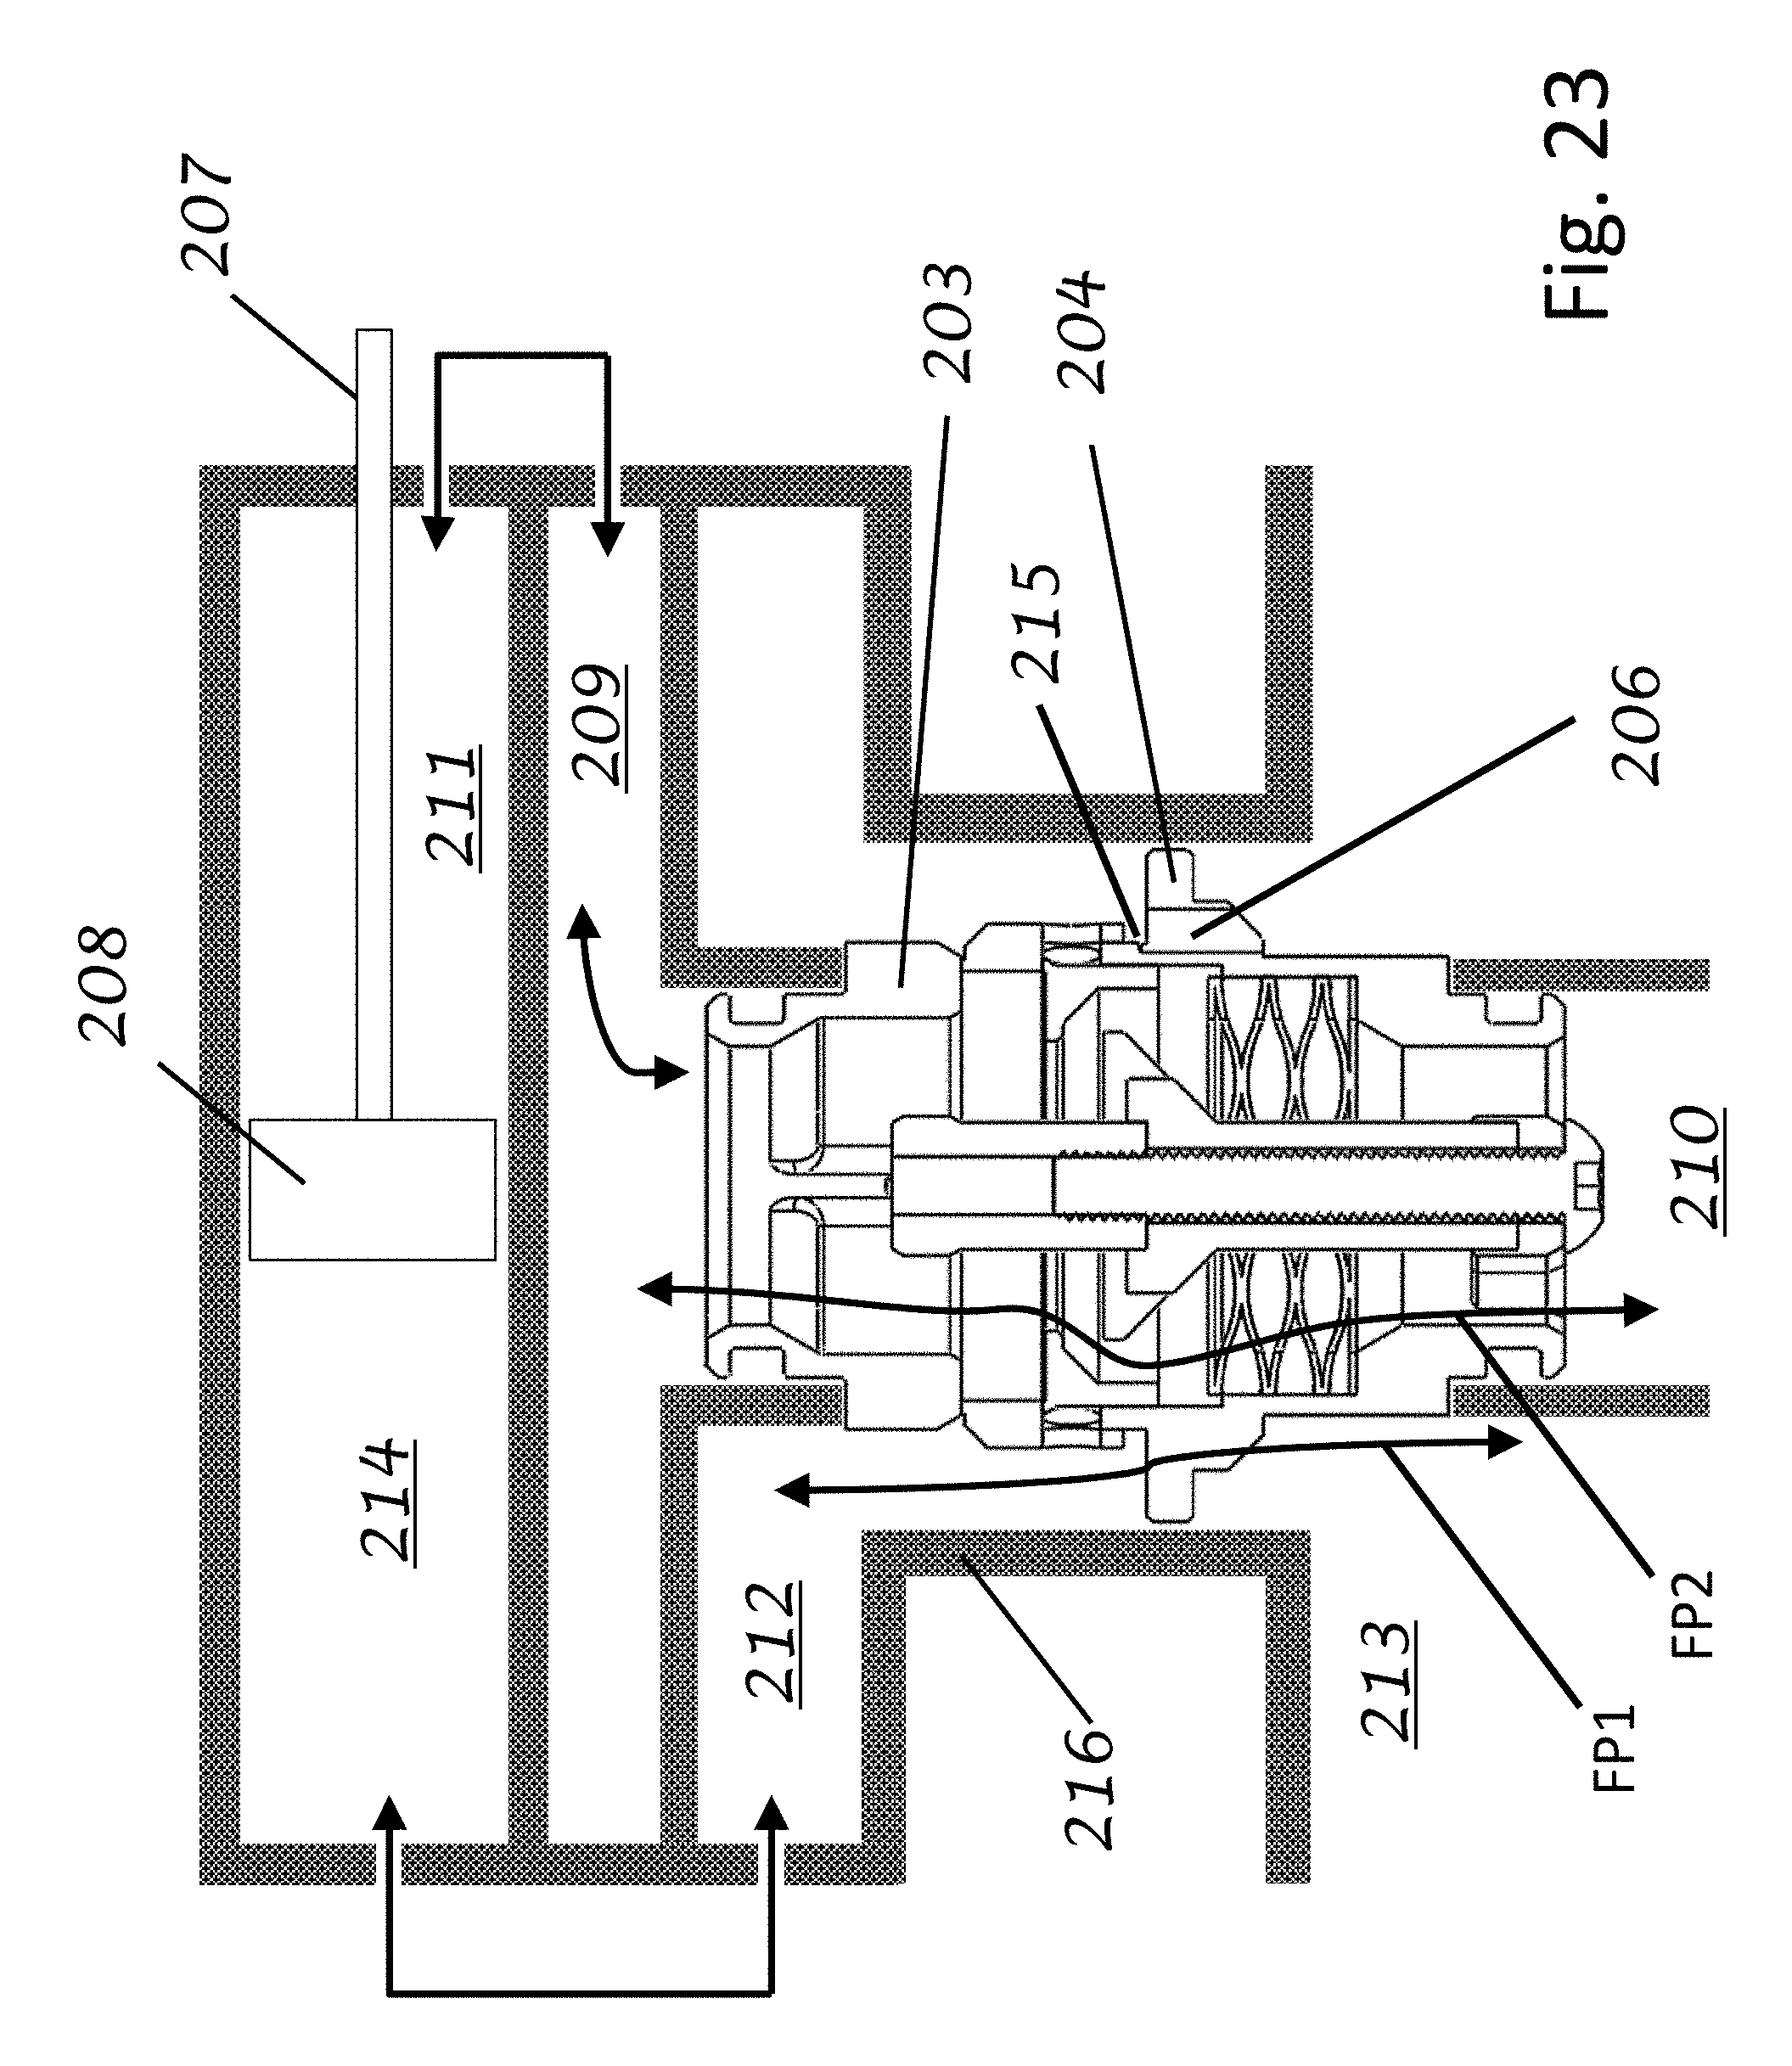 Patent Us 9702424 B2 Variable Resistor Circuit Diagram Physicslab January 2007 Part 1 0 Petitions